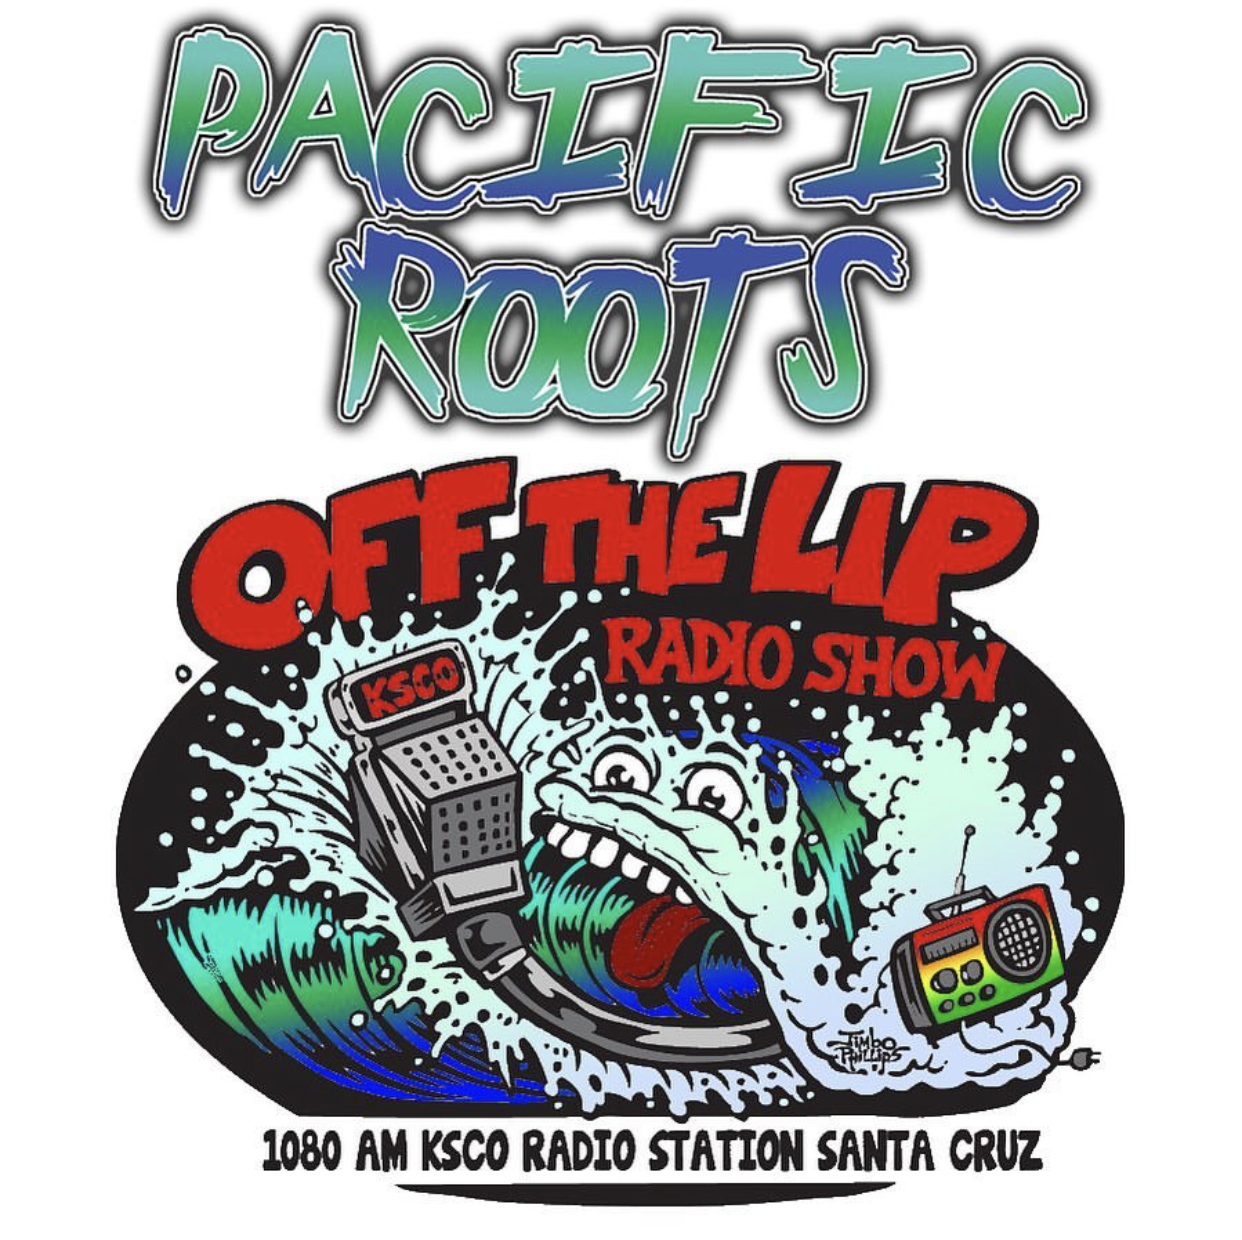 Santa Cruz Reggae band Pacific Roots will be live in Concert on the Off the Lip Radio Show